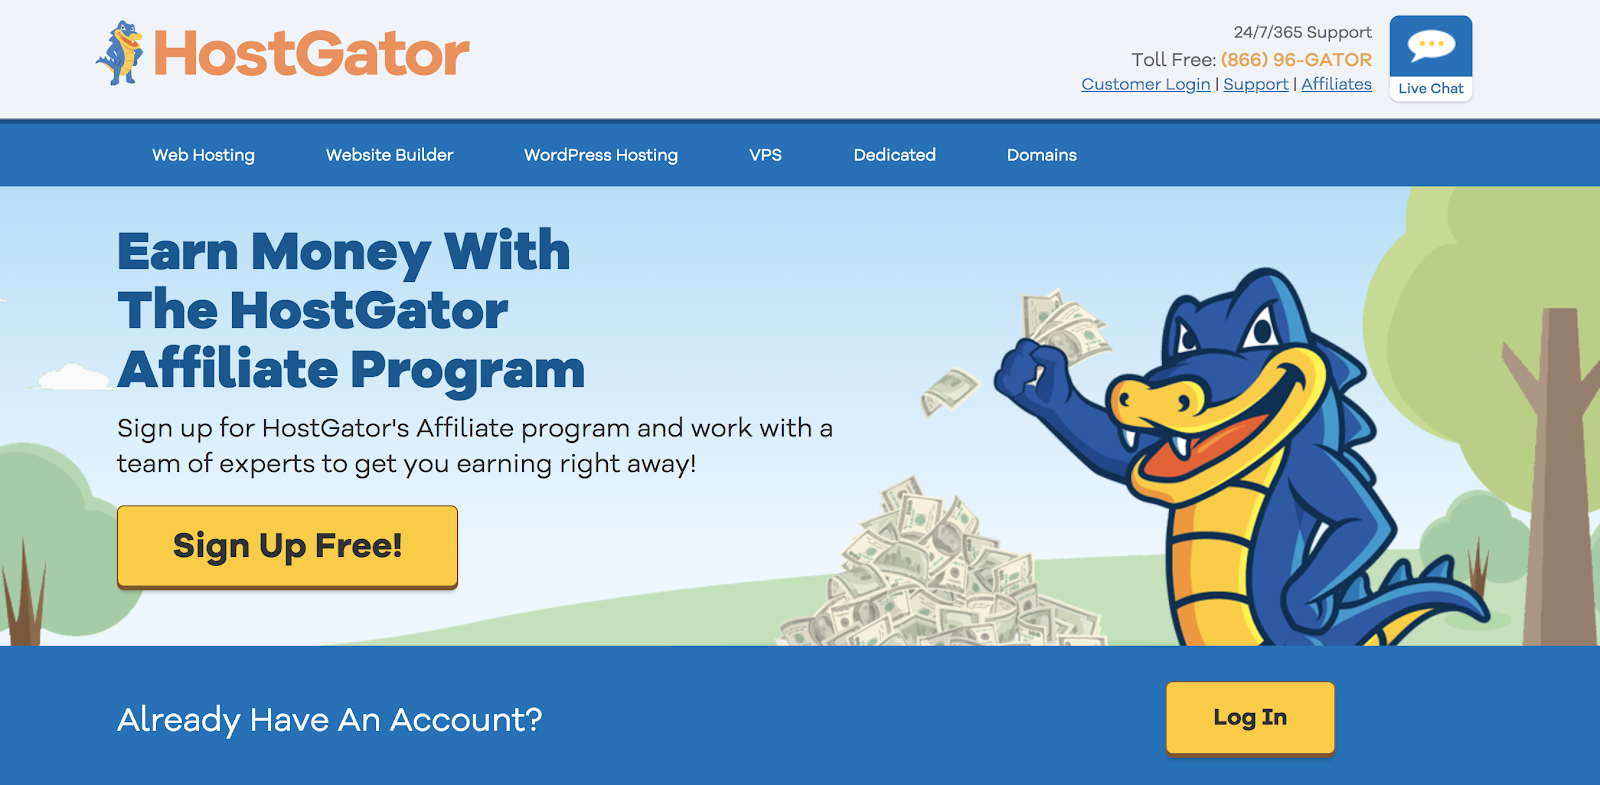 HostGator's Affiliate Program Landing Page (Screenshot)